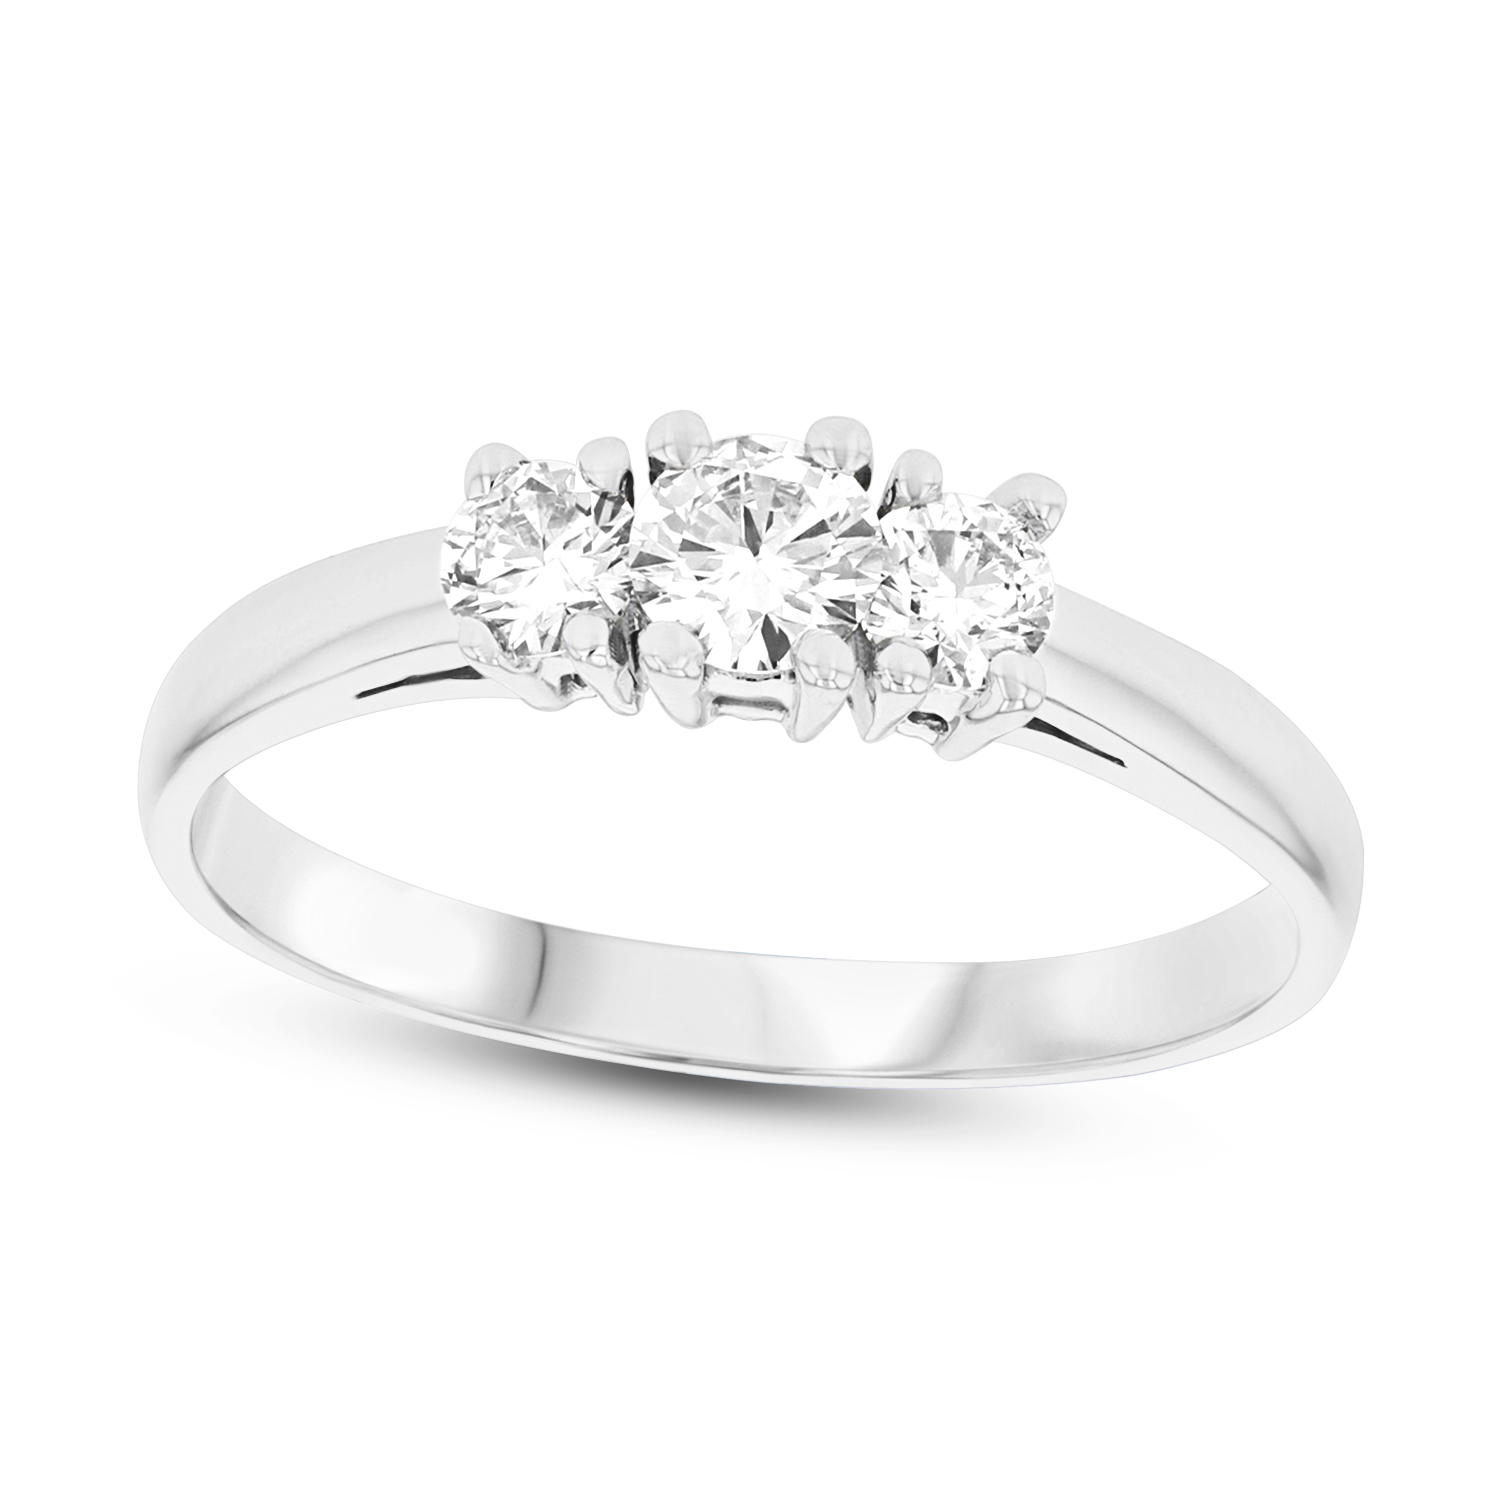 d w present topleftview platinum carats rings past wedding ring ct t diamond engagement whitegold future